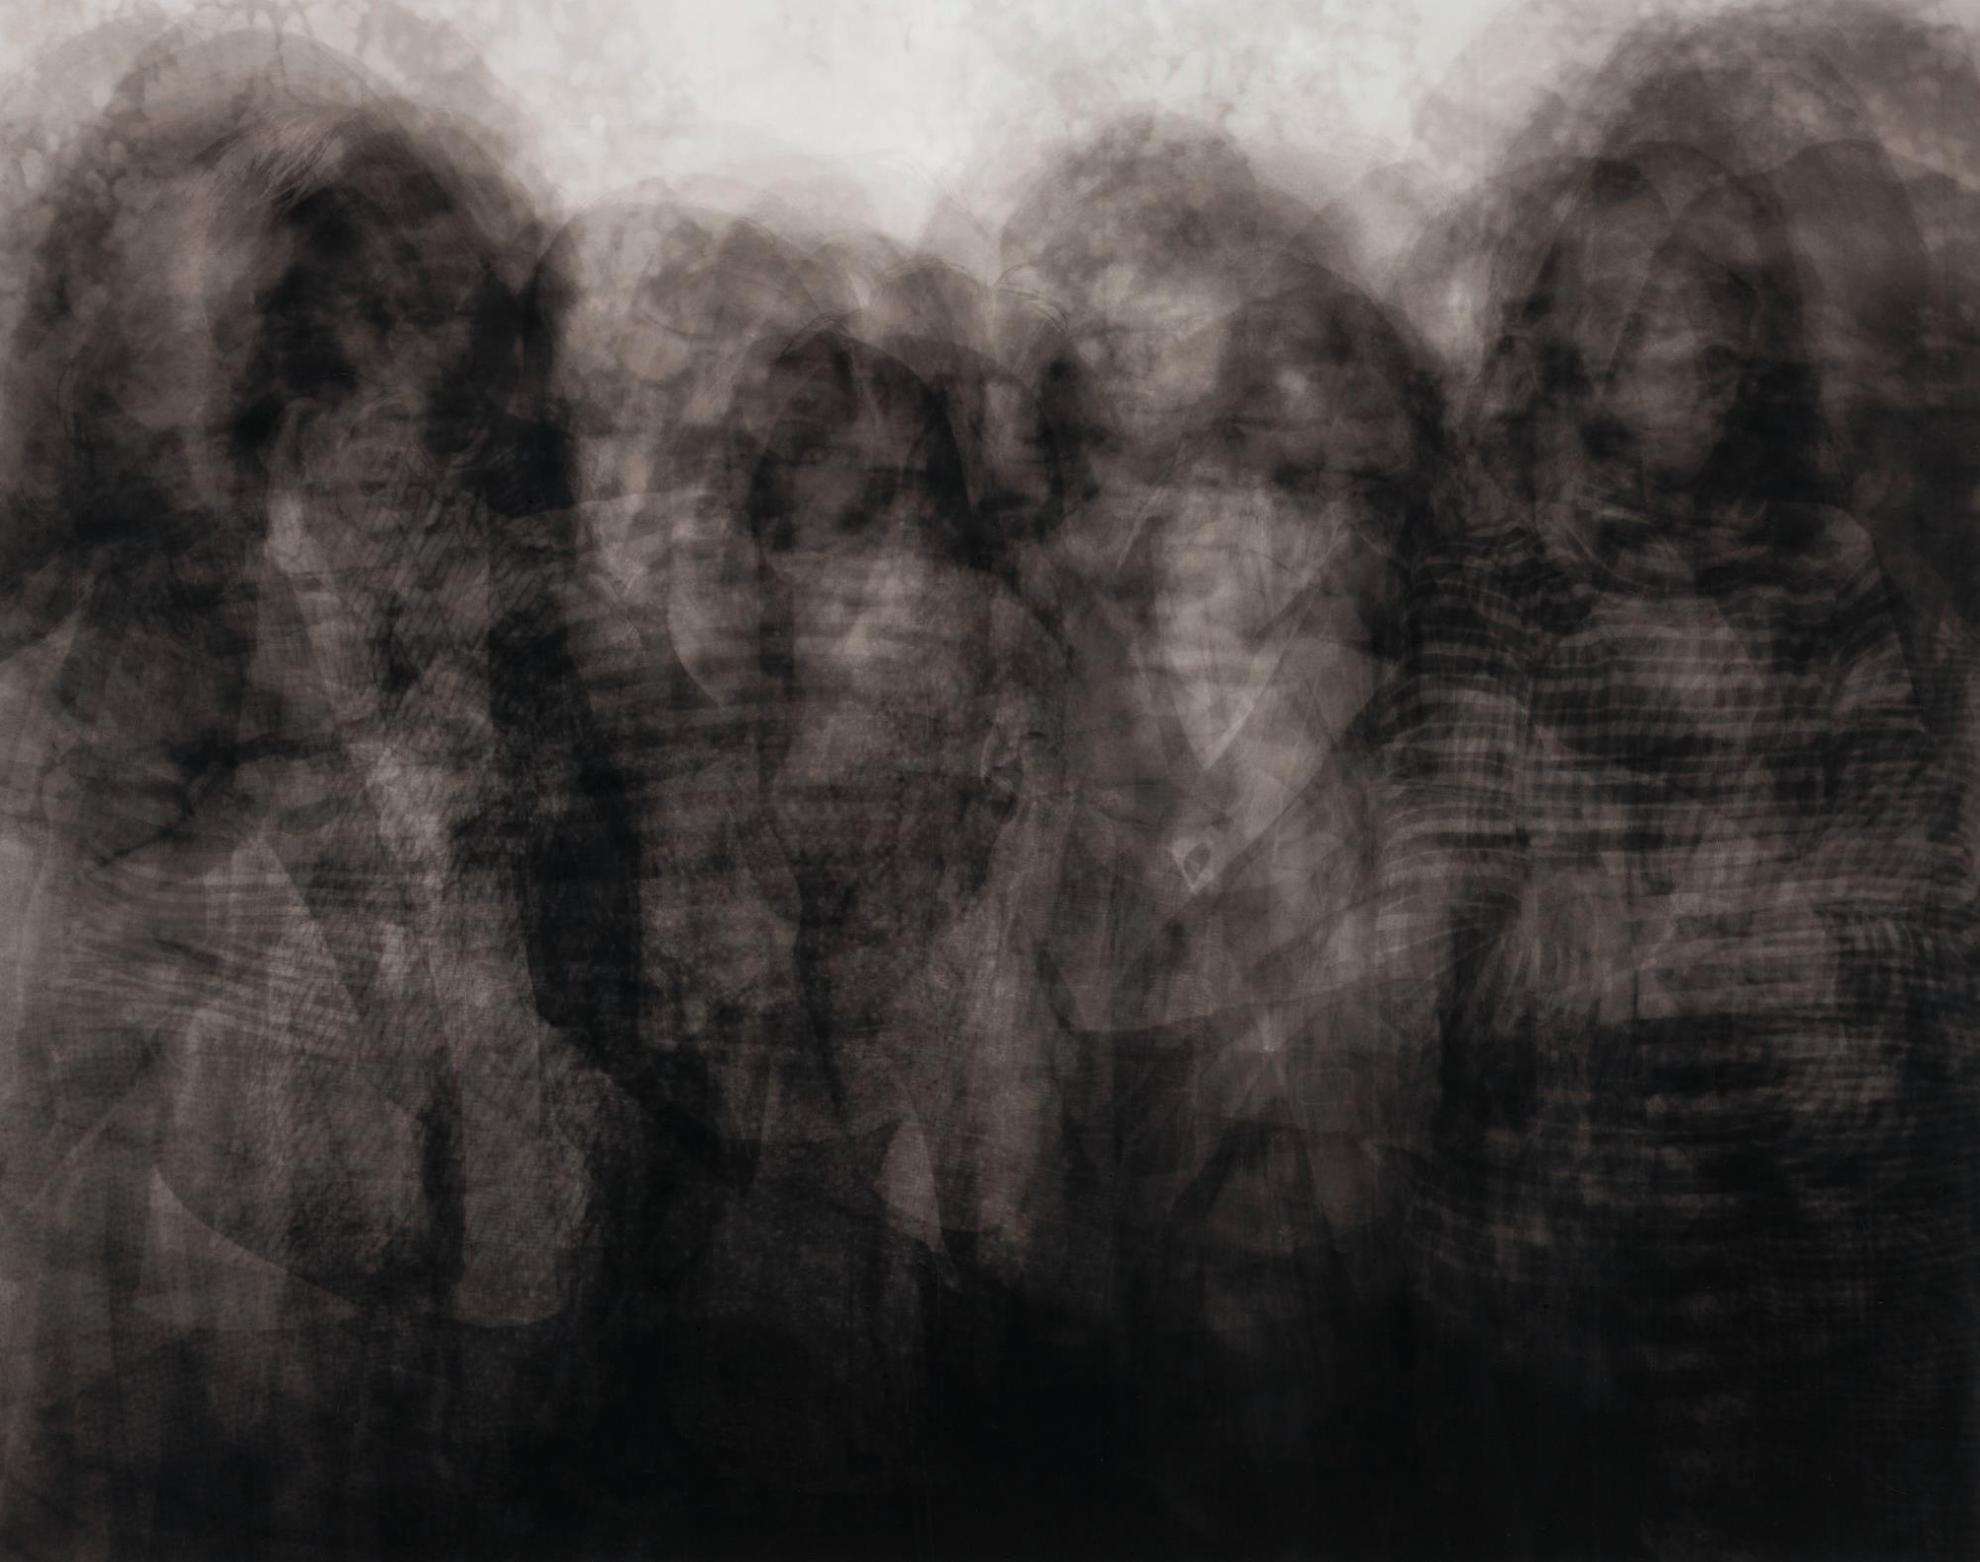 Idris Khan-Every...Nicholas Nixons Brown Sisters-2004